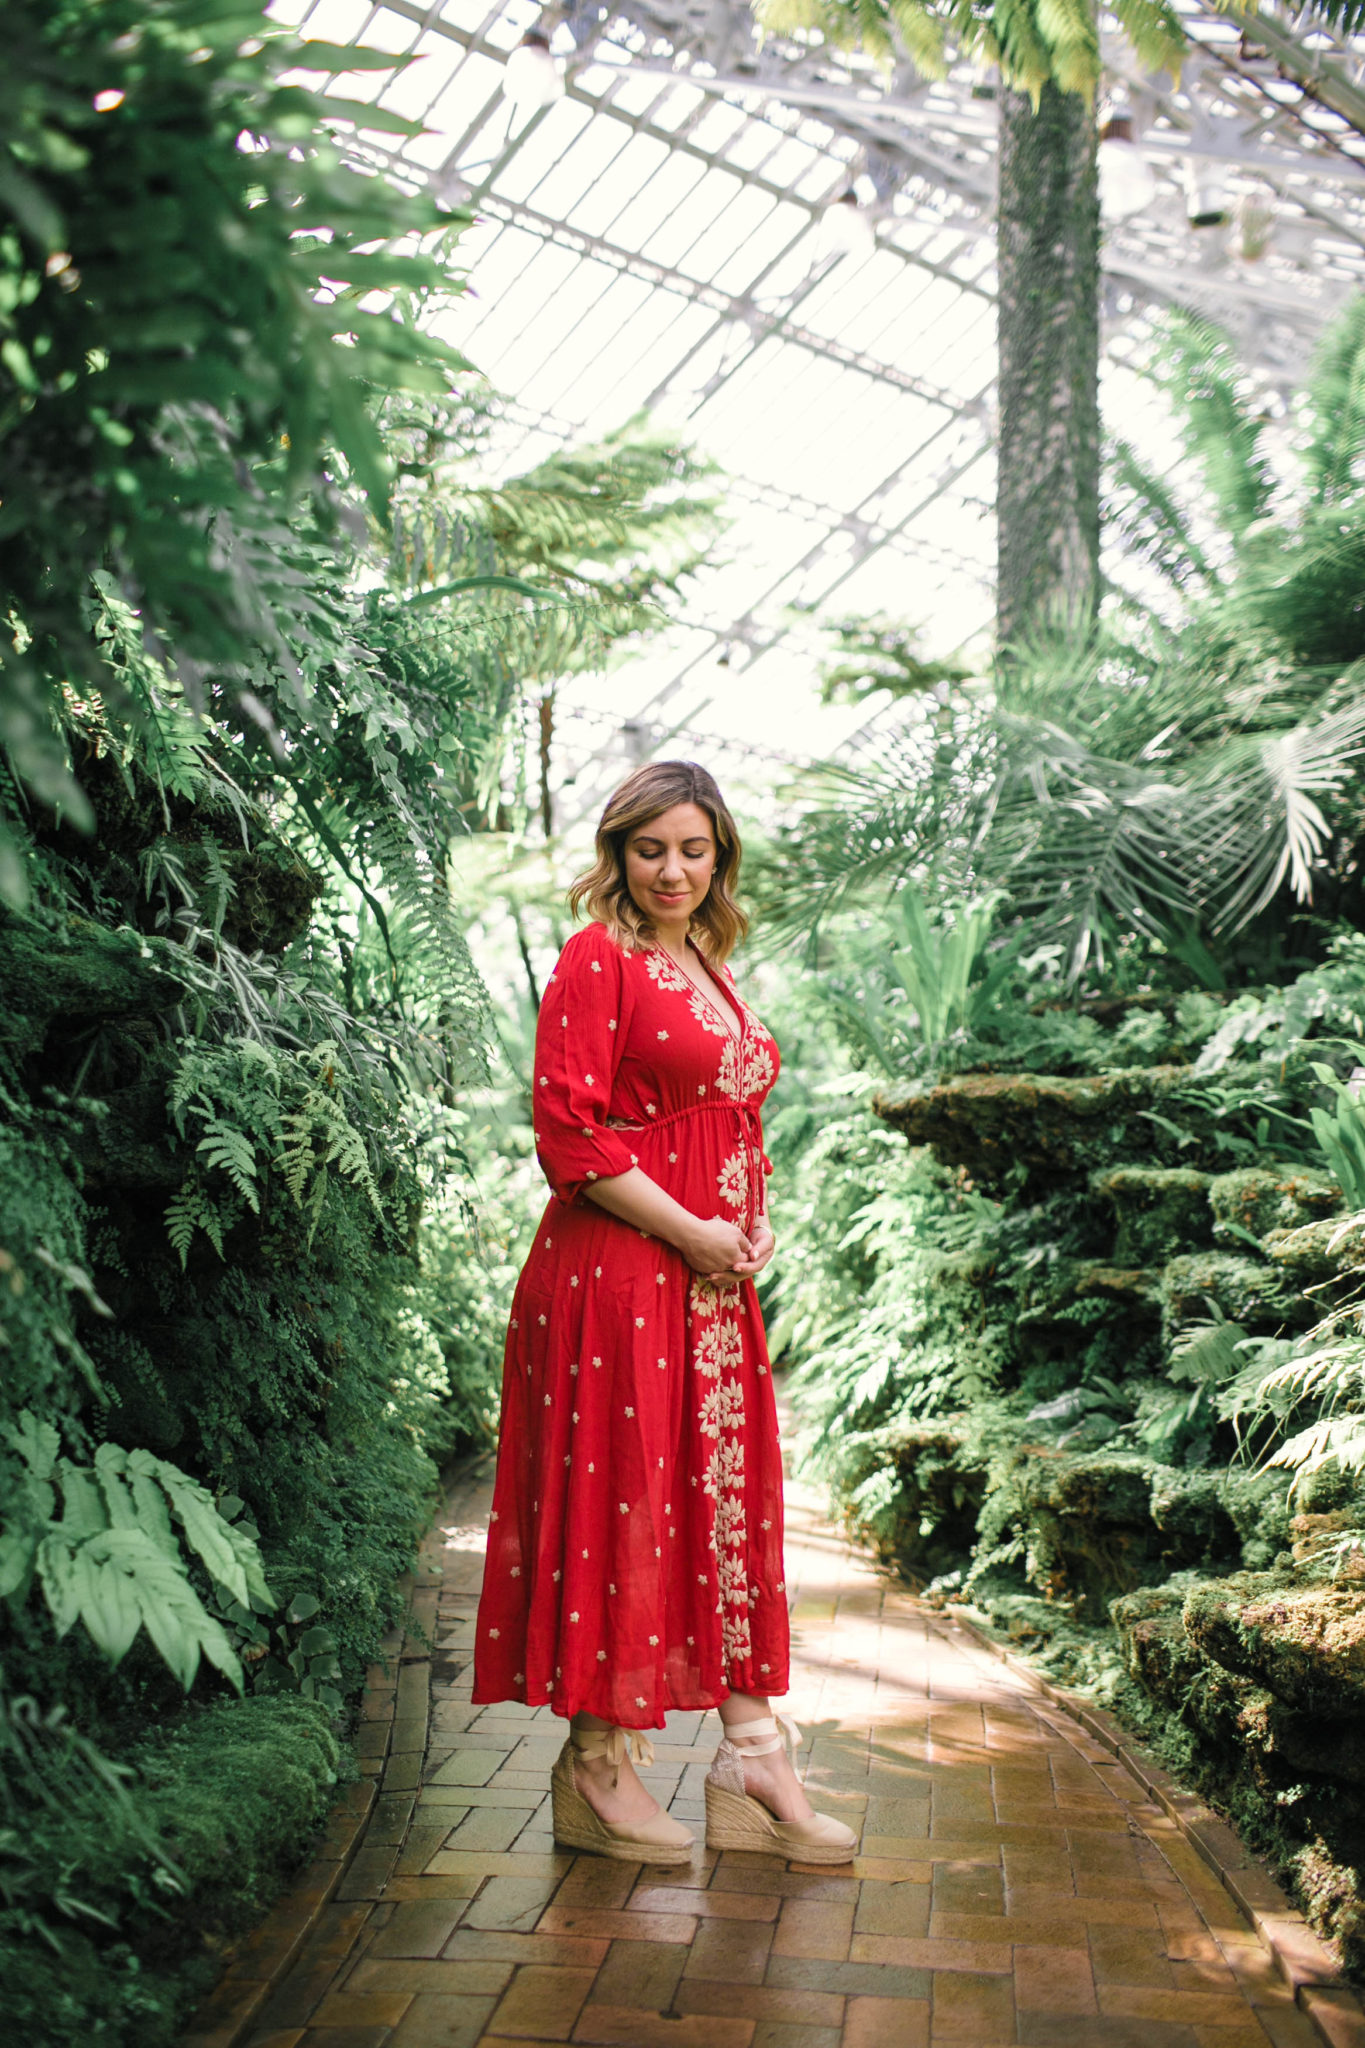 Top US life and style blog, Glass of Glam, features the gender reveal for their first baby: image of a woman wearing a Free People red embroidered midi dress and Castaner wedge espadrilles